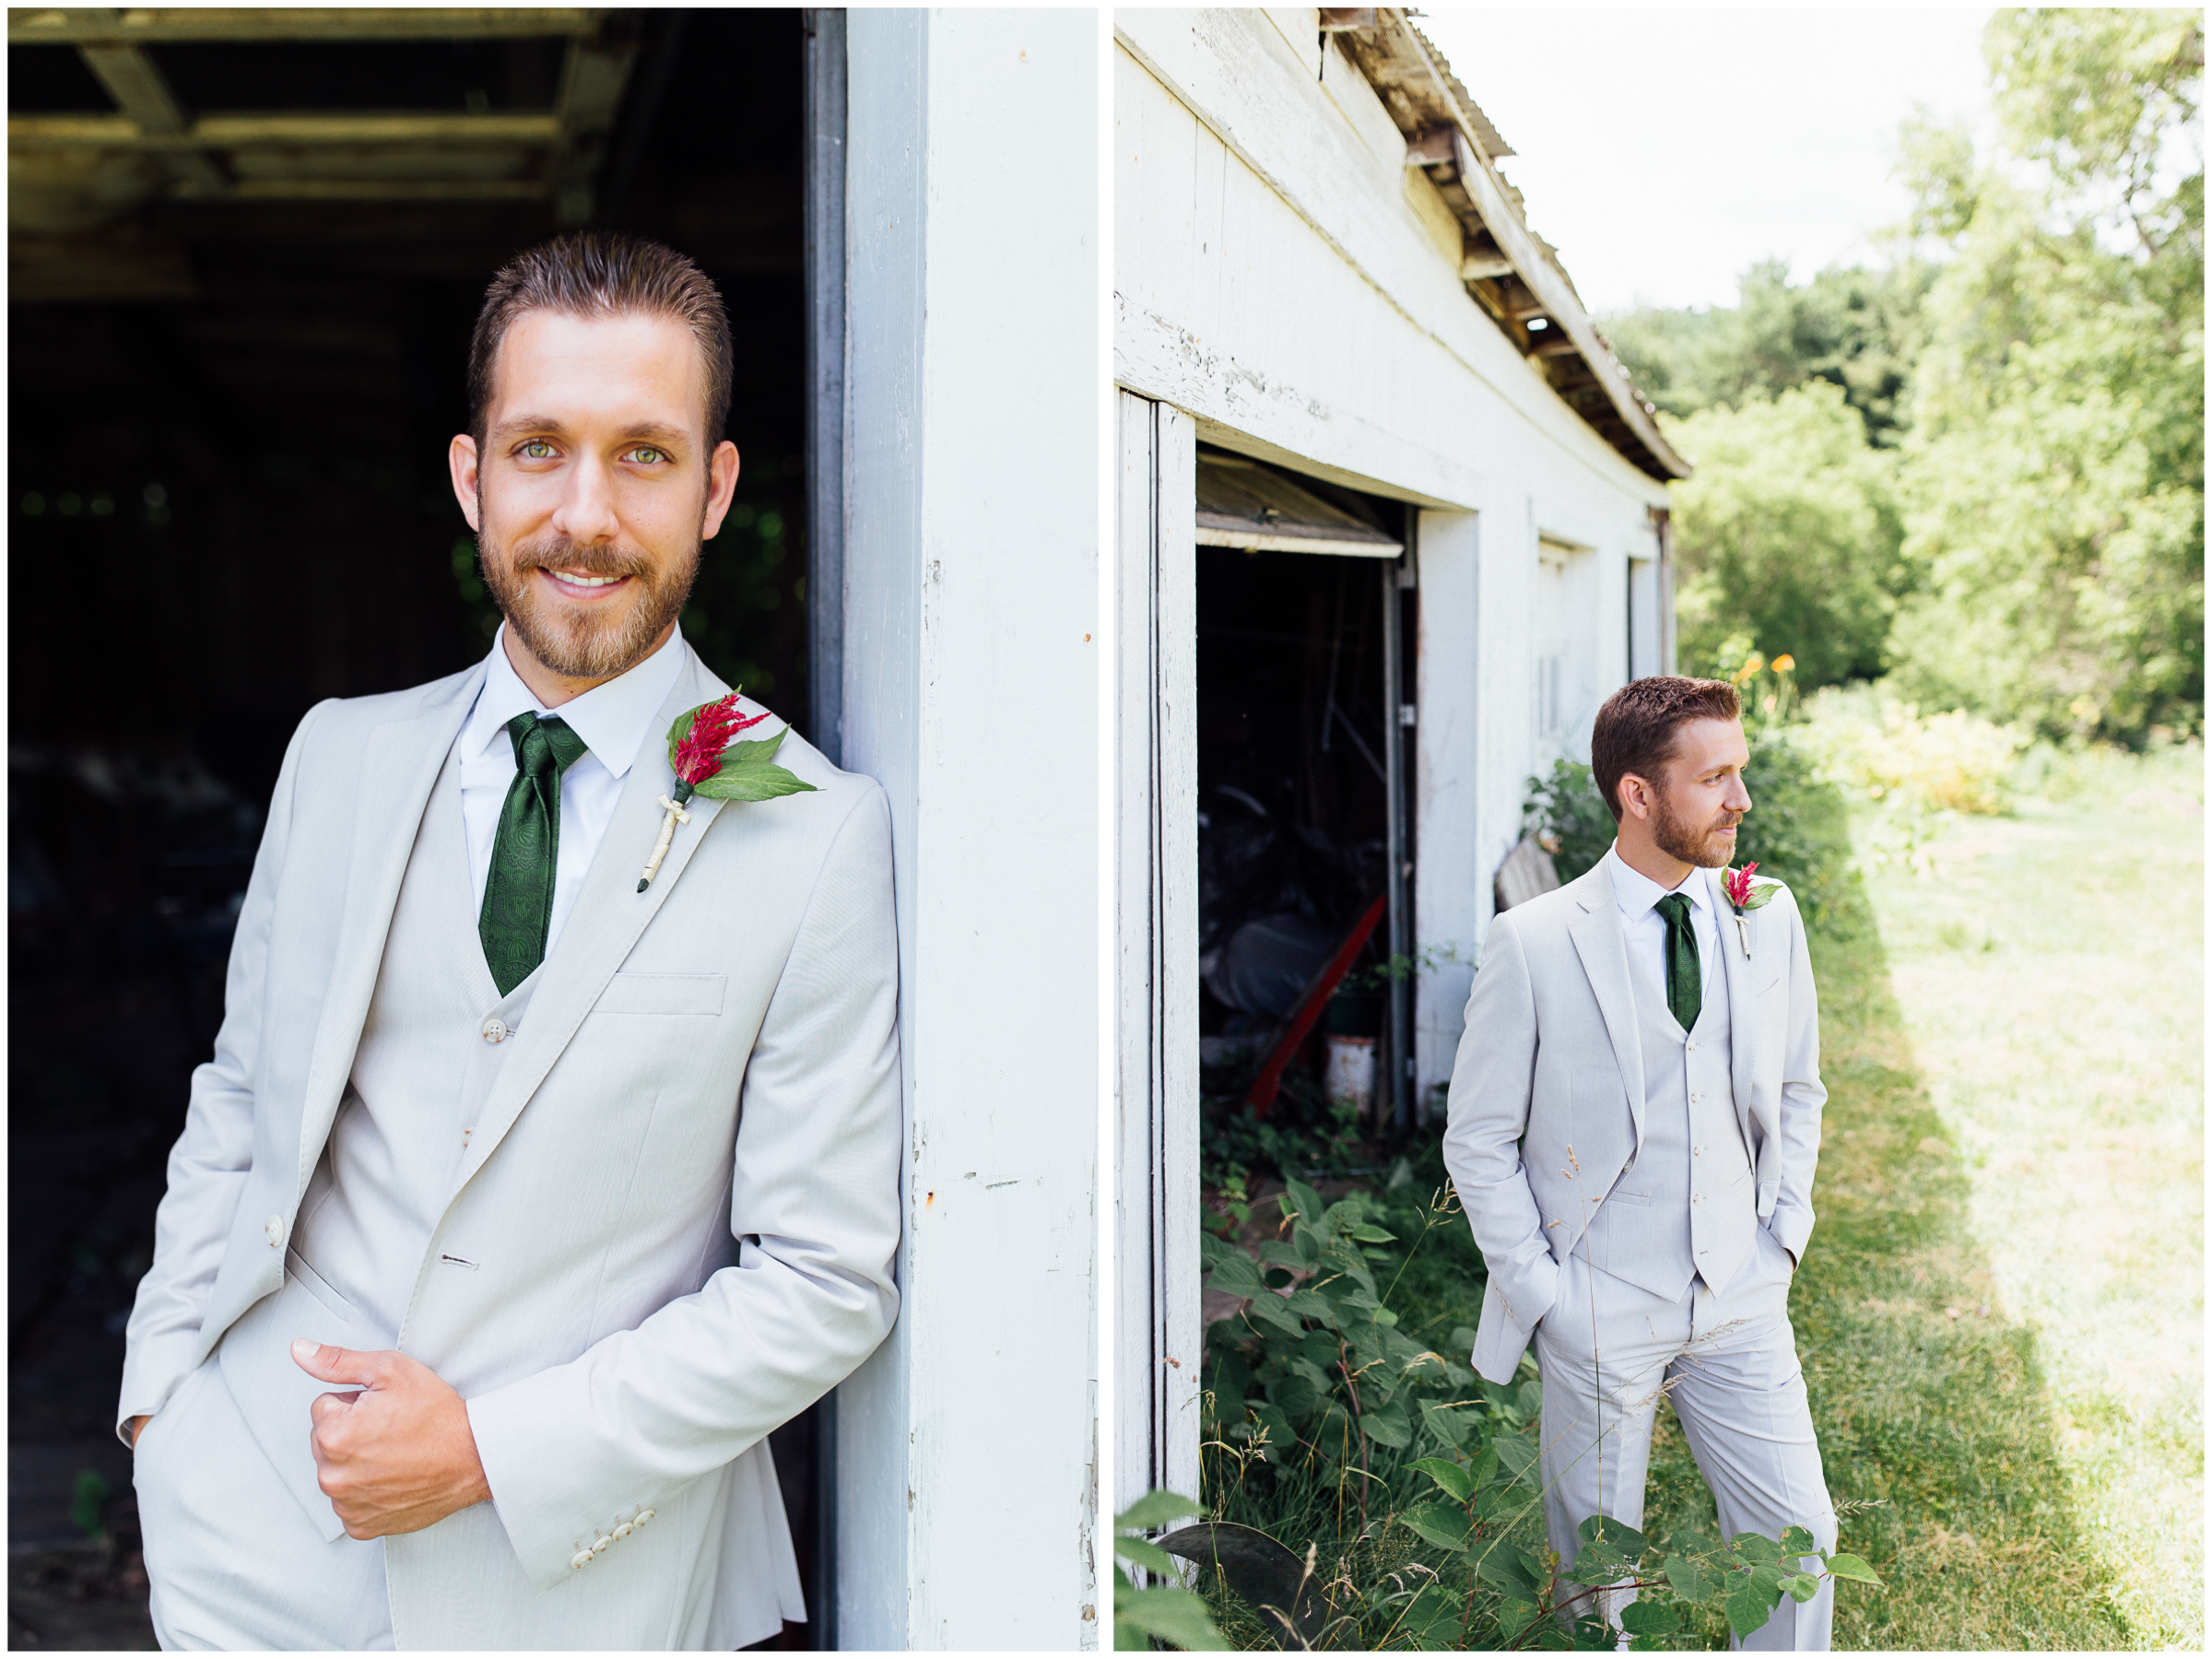 Handsome groom portraits in Vermont